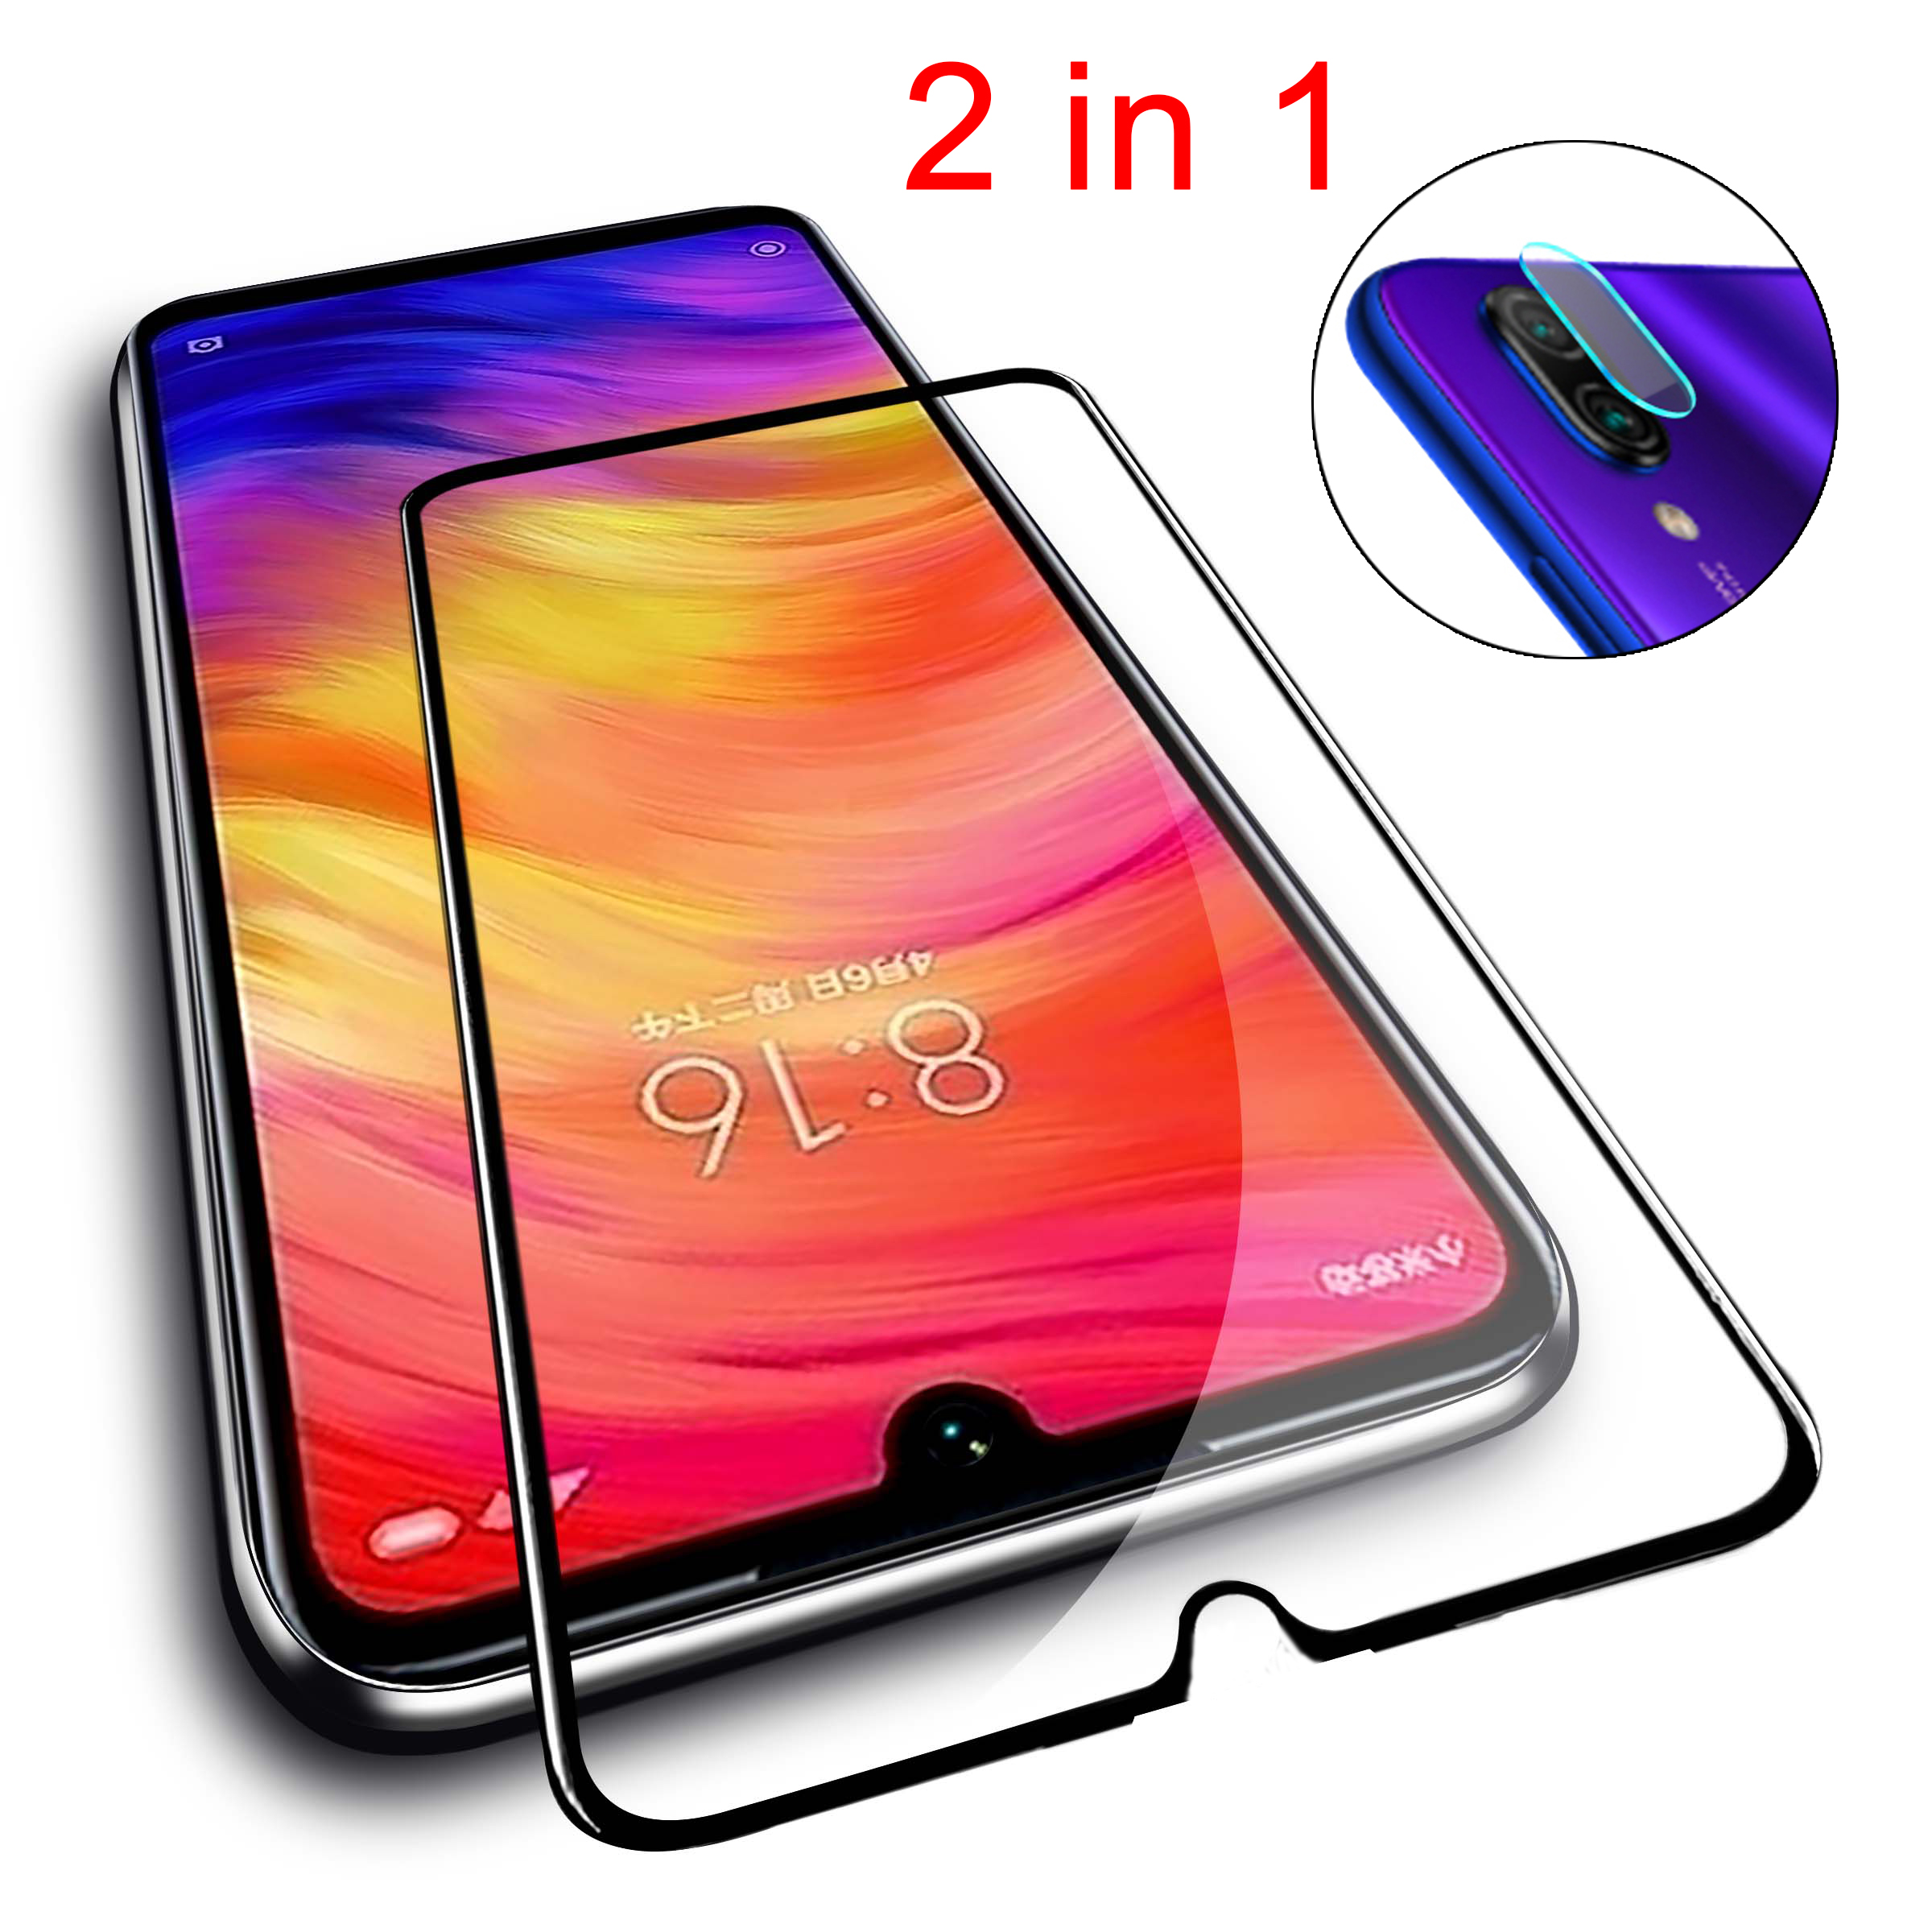 2 in 1 Tempered Glass for Xiaomi <font><b>Redmi</b></font> <font><b>Note</b></font> <font><b>7</b></font> Camera <font><b>Lens</b></font> Protective Glass on the Xiomi <font><b>Redmi</b></font> <font><b>7</b></font> Note7 redmi7 HD Screen <font><b>Protector</b></font> image